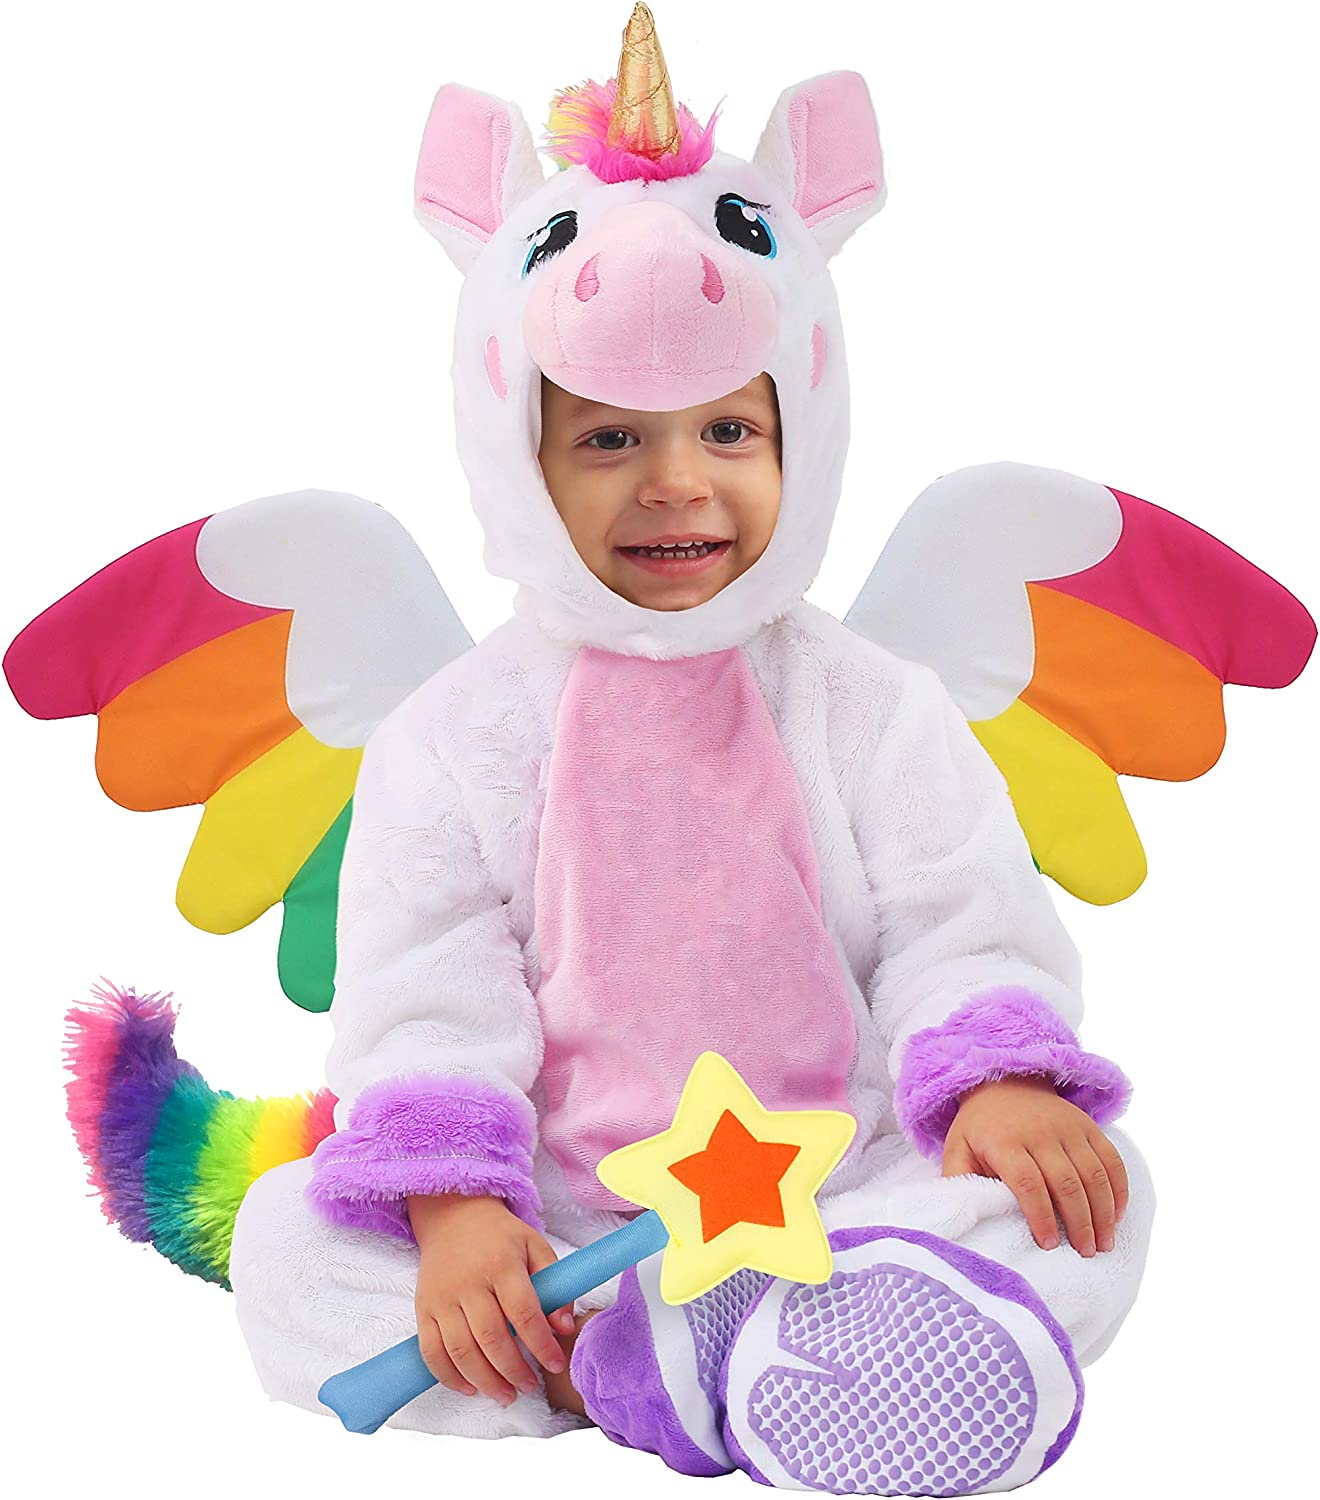 Spooktacular Creations Baby Unicorn Costume Infant Deluxe Set for Kids Halloween Trick or Treating Dress Up